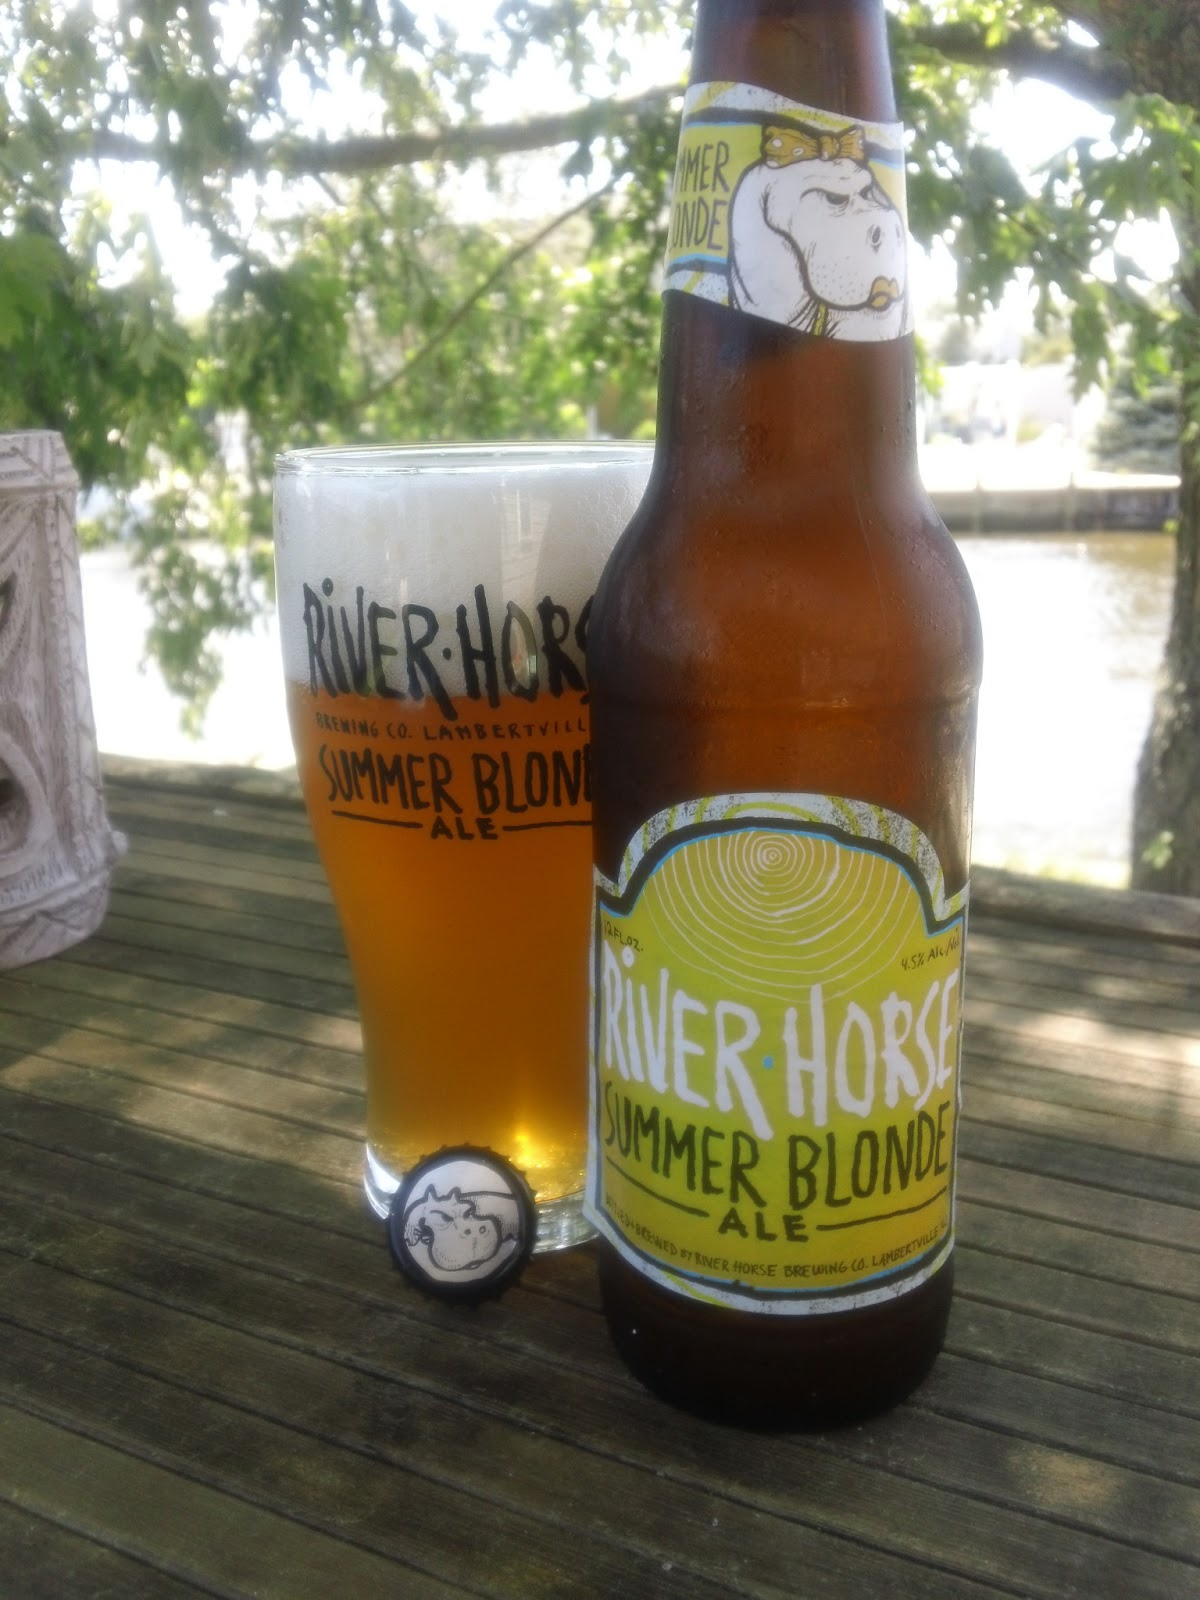 Celebrating The Suds River Horse Summer Blonde 10 Beers Of Summer